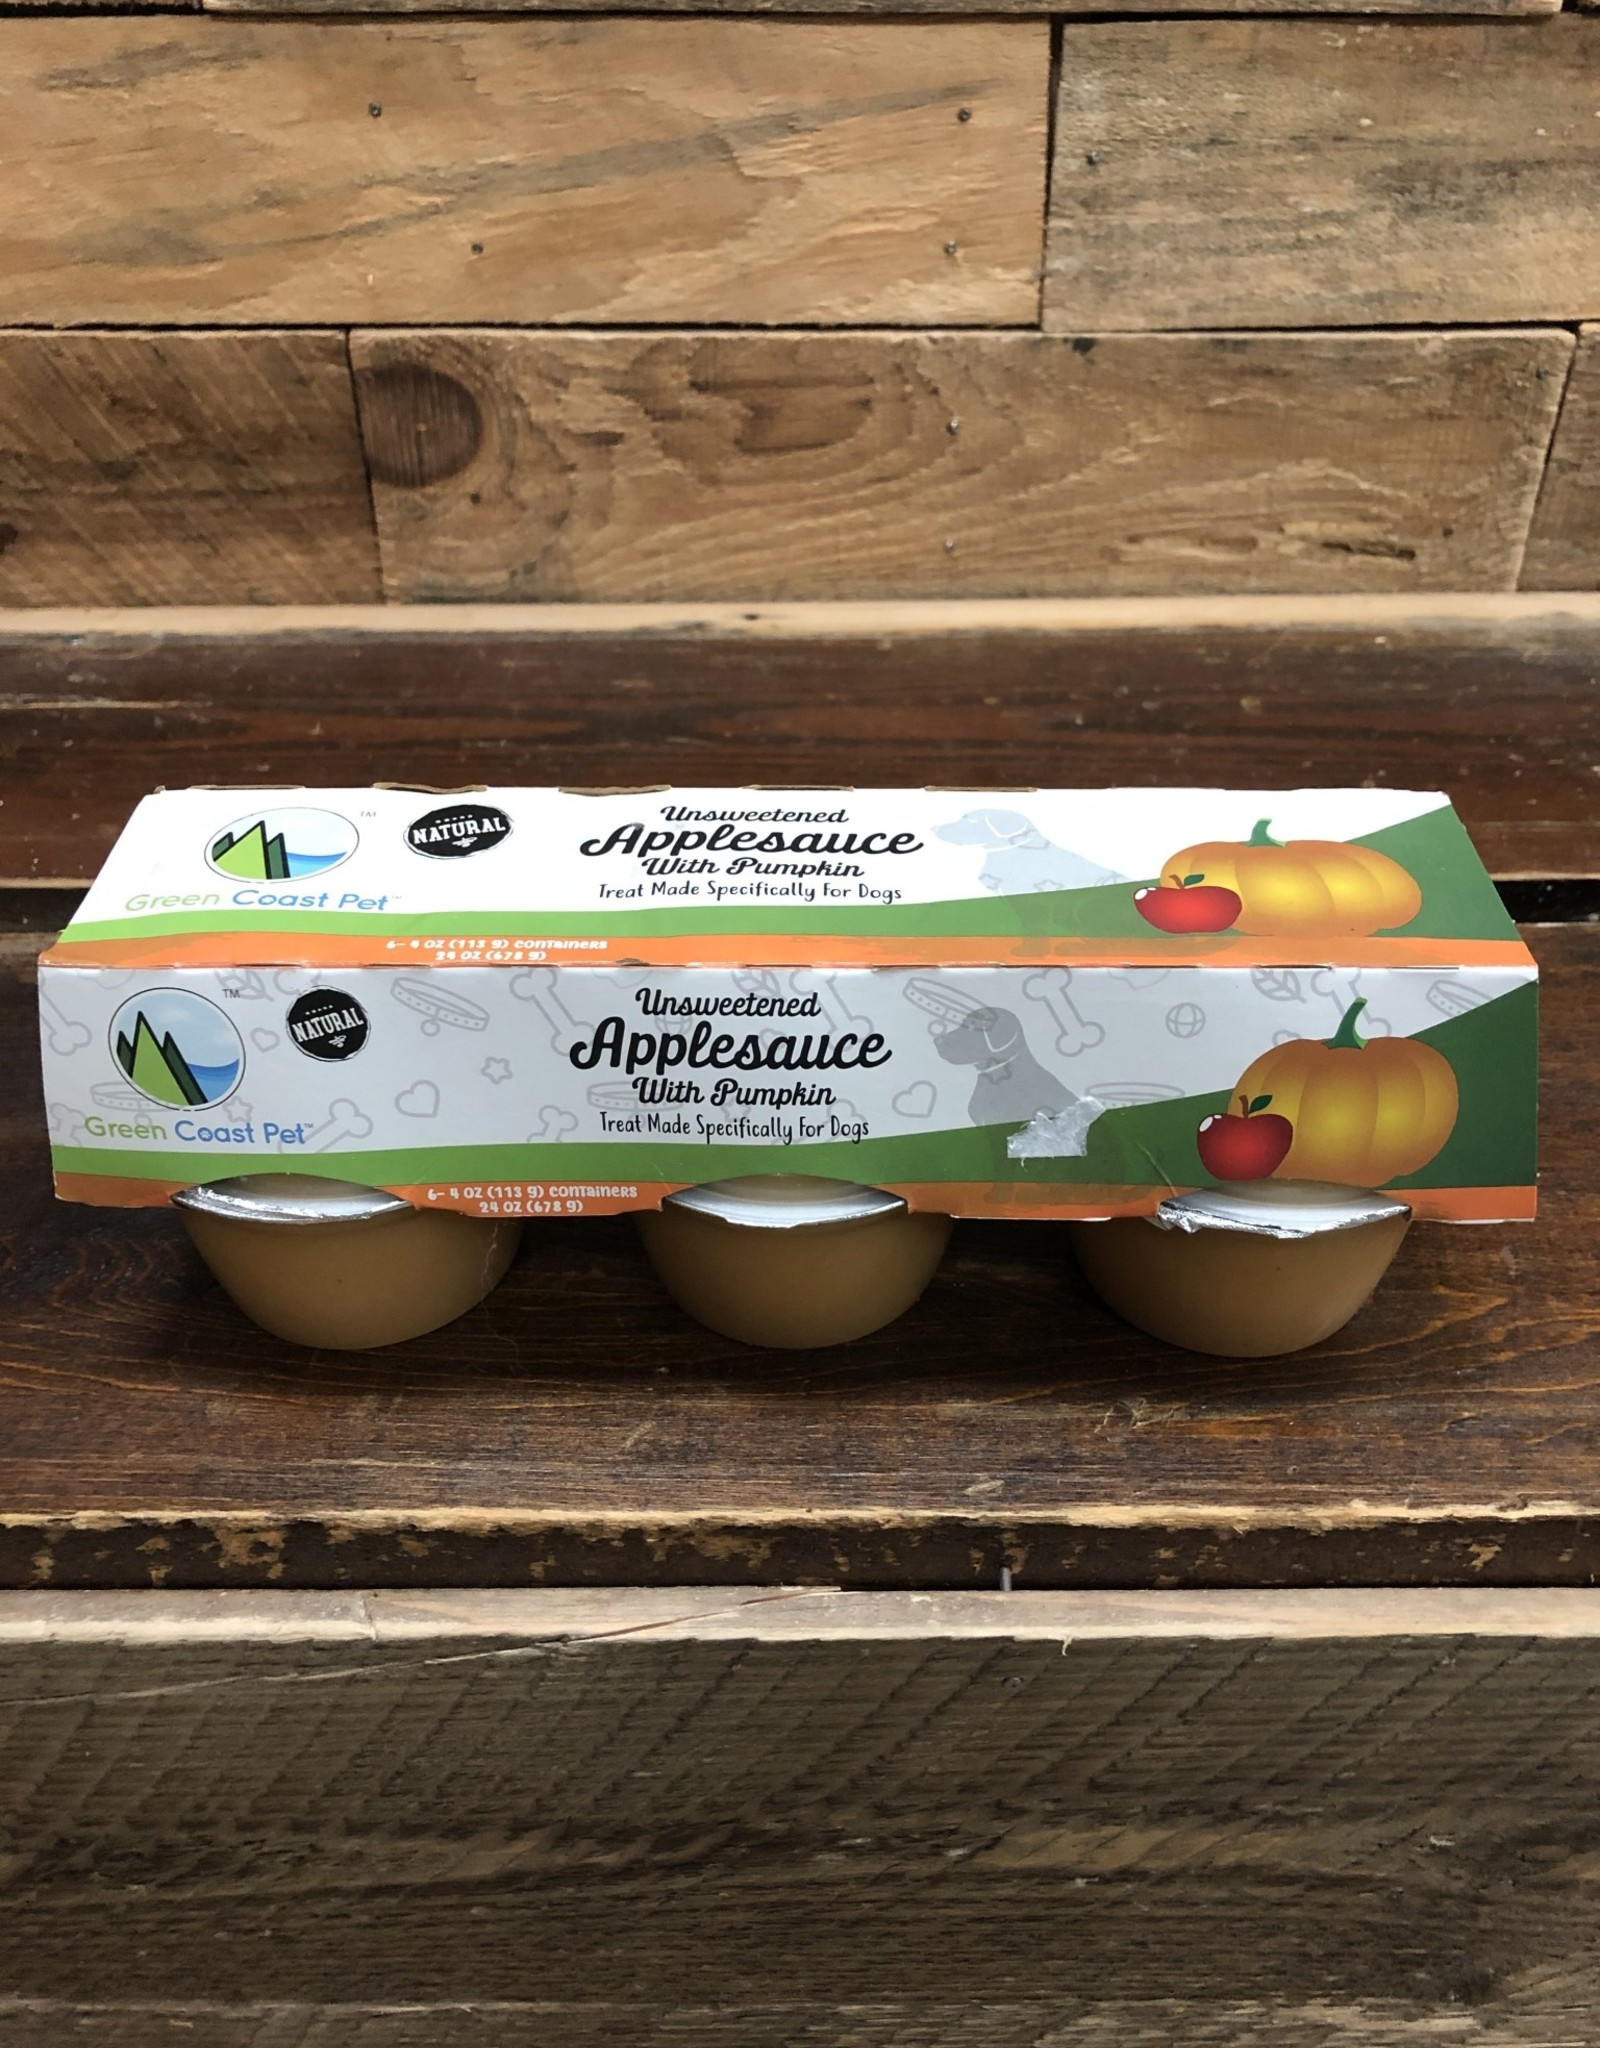 Green Coast Pet Applesauce w/ Pumpkin 6pk